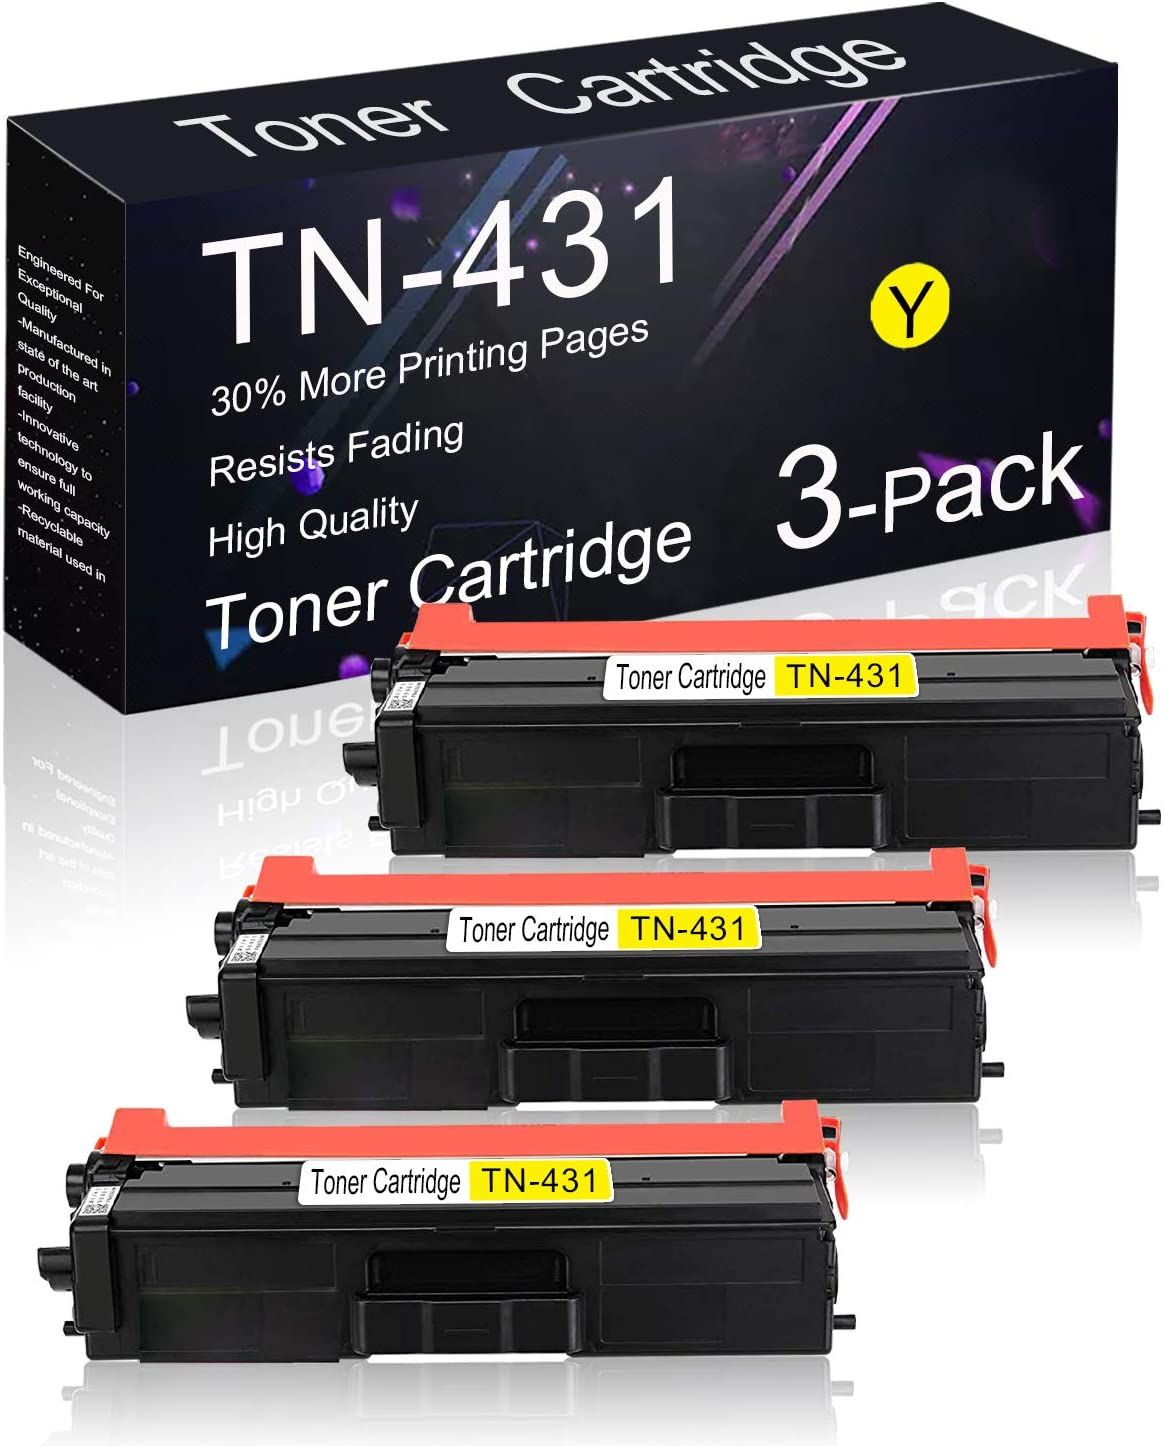 Compatible Toner Cartridge 3 Pack Yellow TN-431 Replacement for Brother MFC-L8610CDW / L8900CDW / L9570CDW / L9570CDWT, DCP-L8410CDW, HL-L9310CDWTT / L9310CDWT / L8360CDWT / L8260CDW Printers.